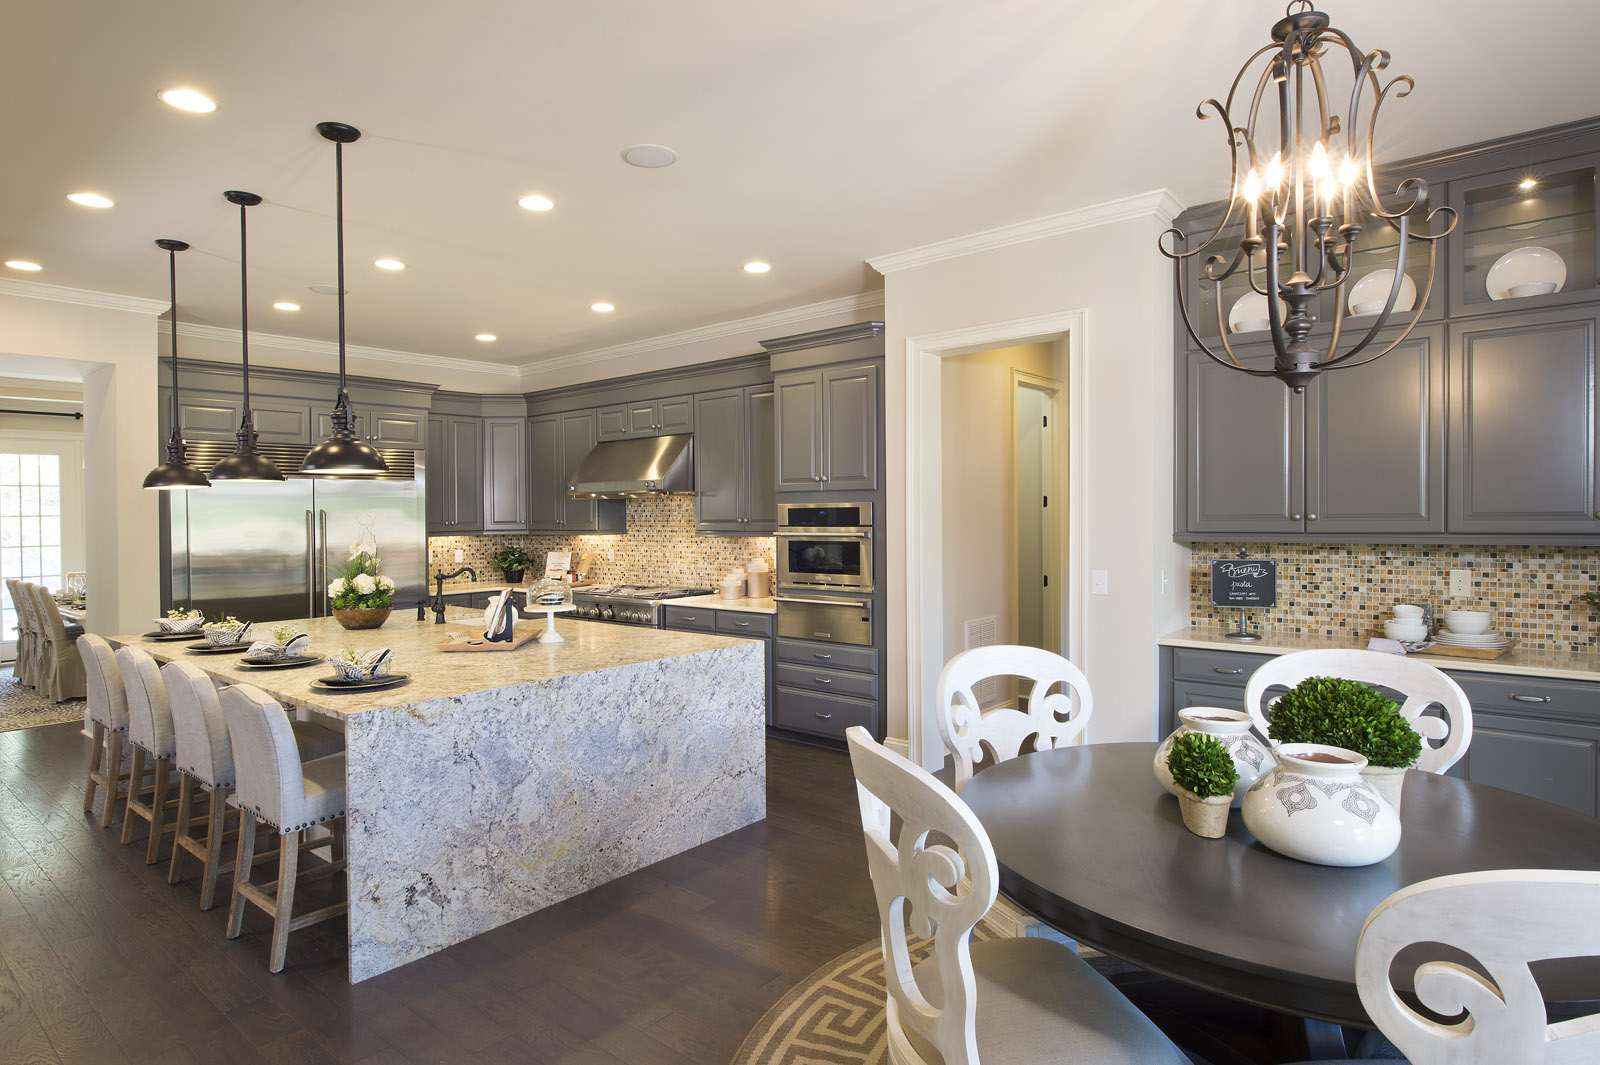 Shea homes opens new luxury model homes in weddington nc for Luxury home models